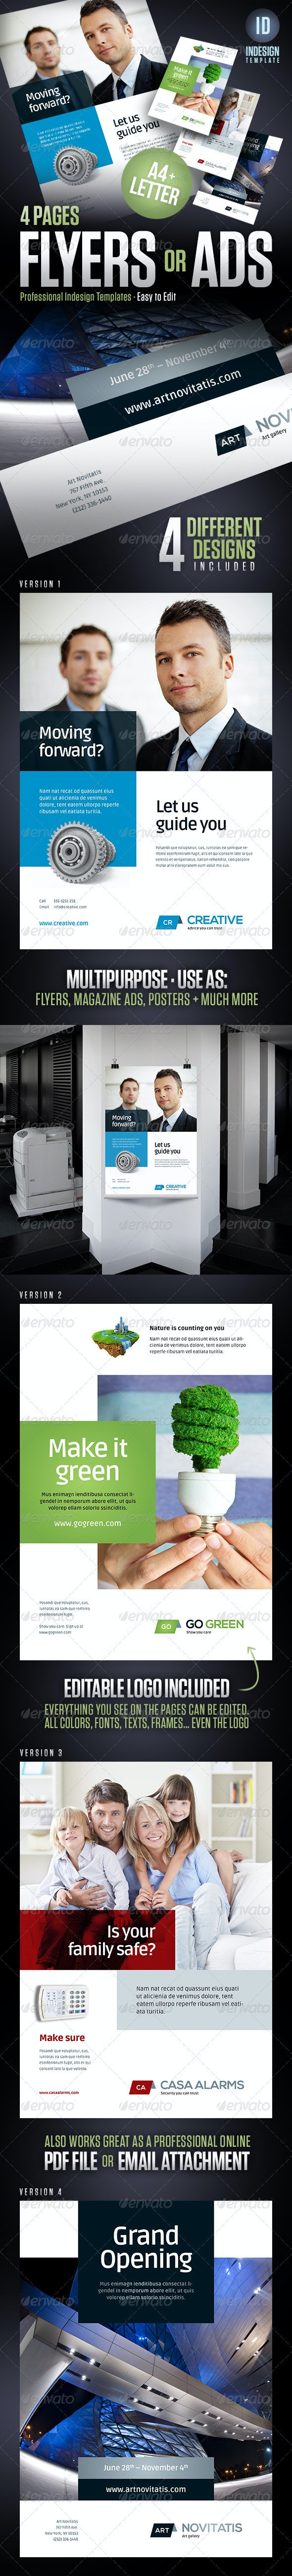 Flyers, Magazine Ads, Posters, Product Sheets - Corporate Flyers